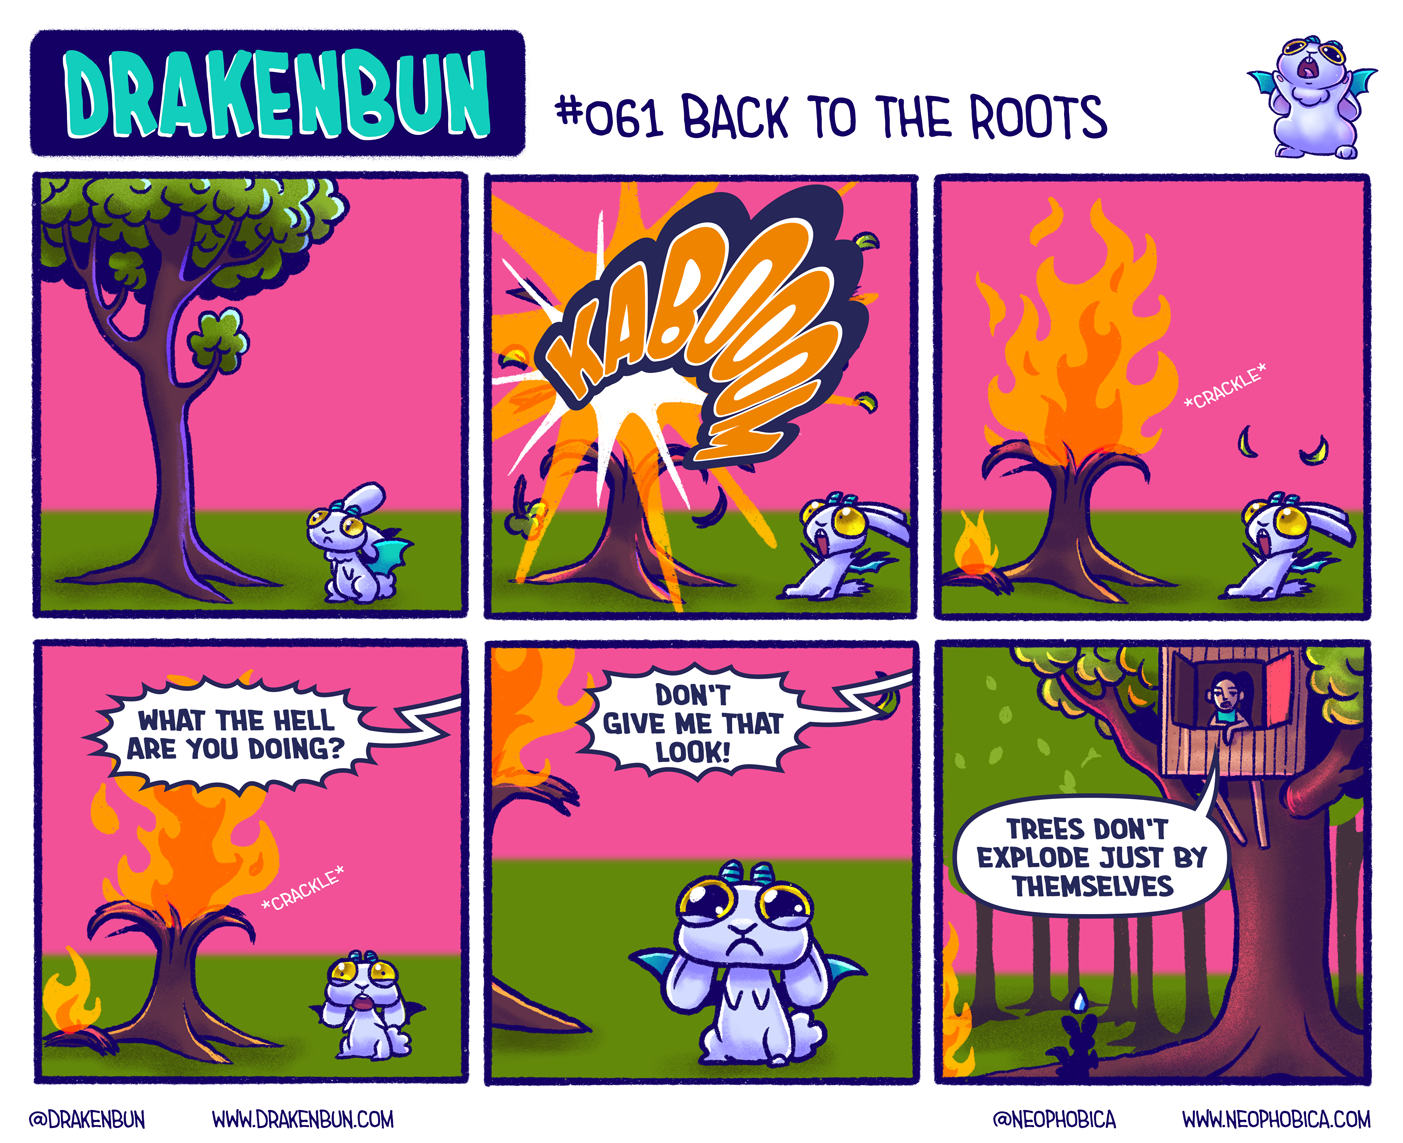 #061 Back to the Roots